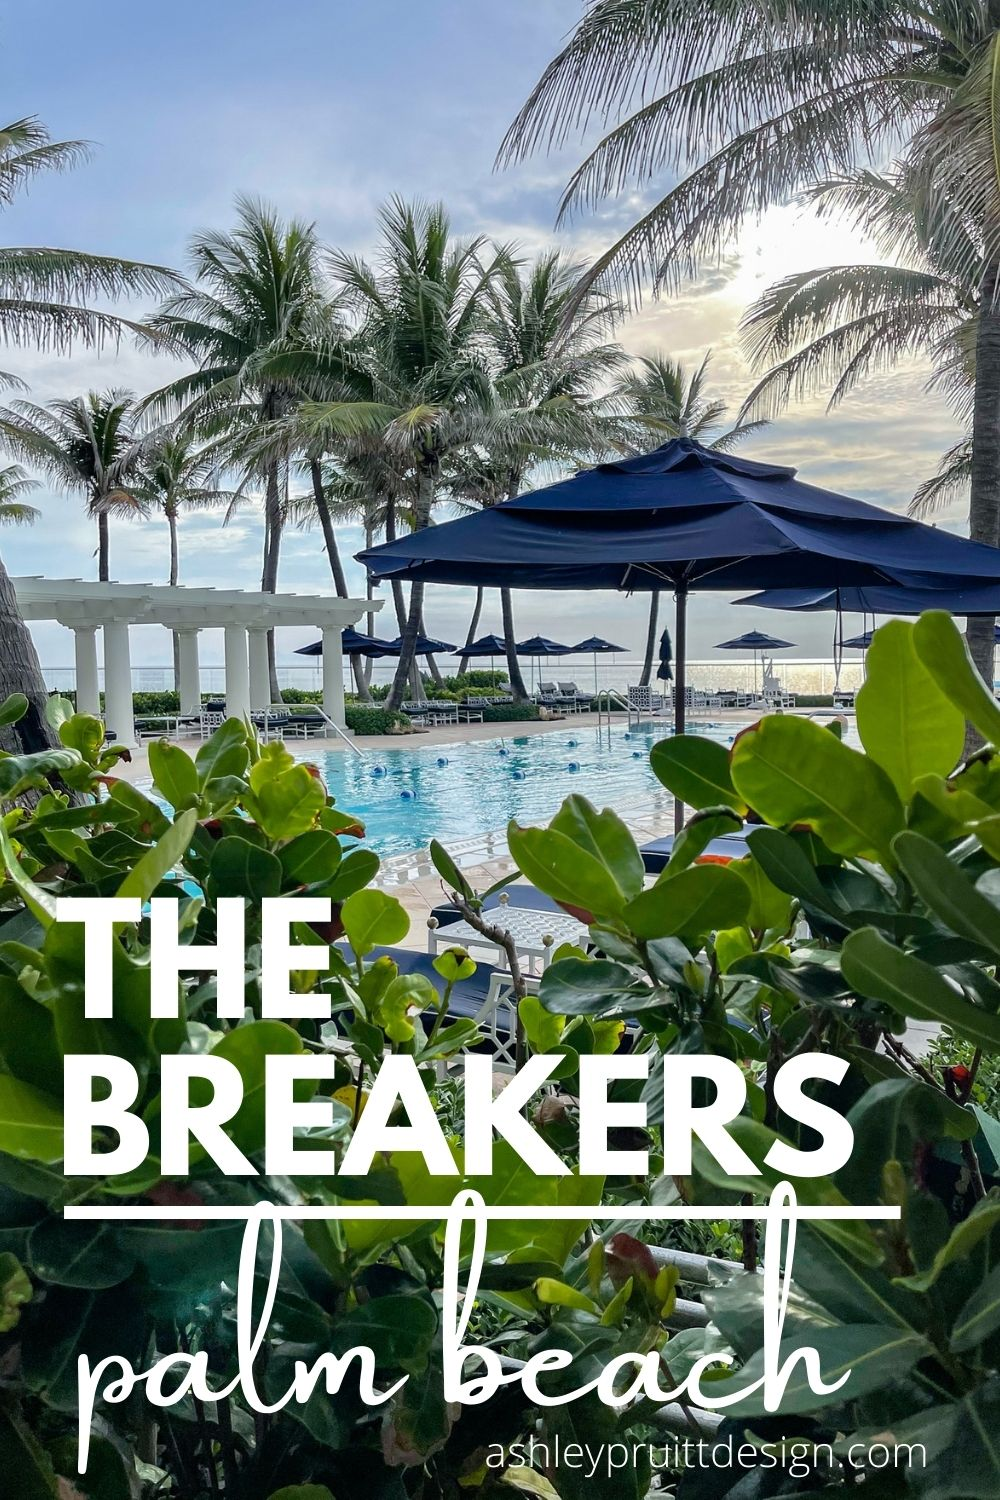 The Breakers Palm Beach - Unapologetic Luxury